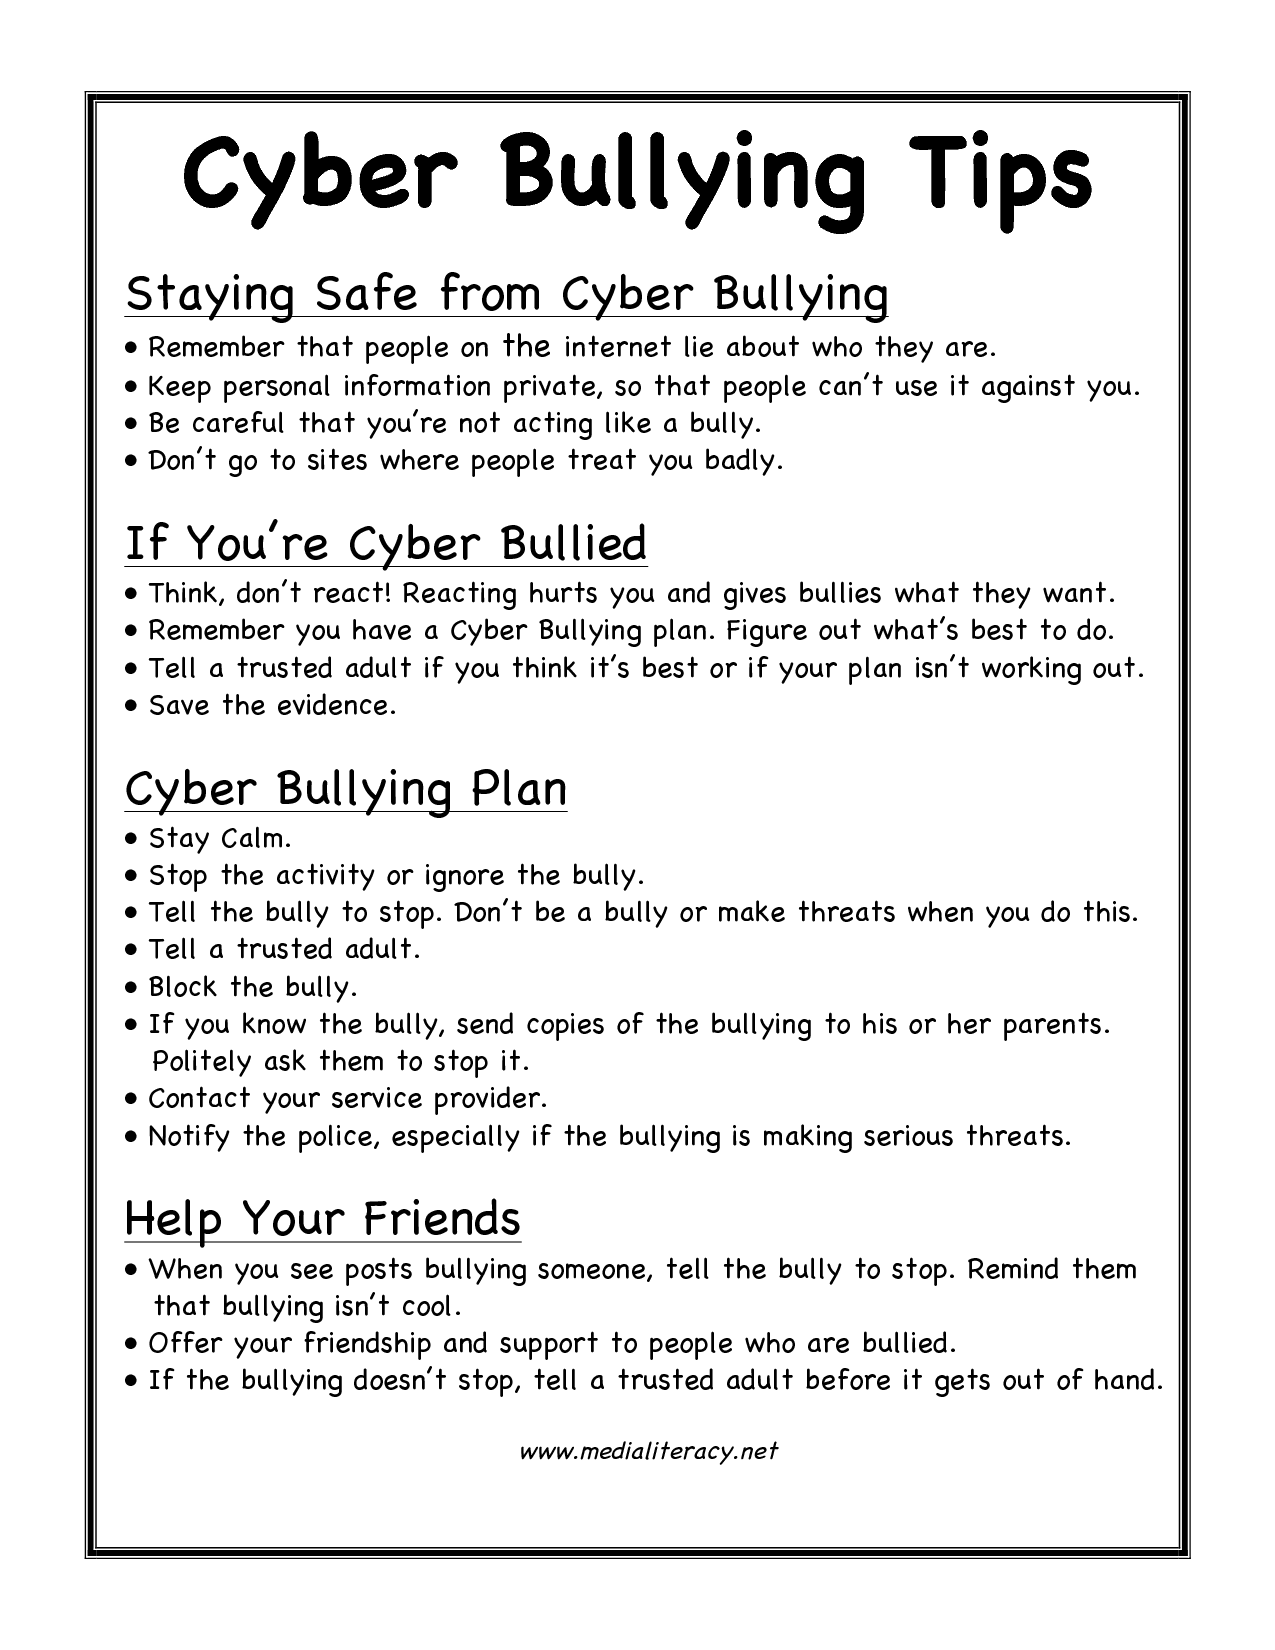 Worksheets Cyber Bullying Worksheets kimber pepperblaster ii red oc cyber bullying and counselling just what is the ideal self defense gadget to use when walking your car visit this link find out httpwww selfdefen